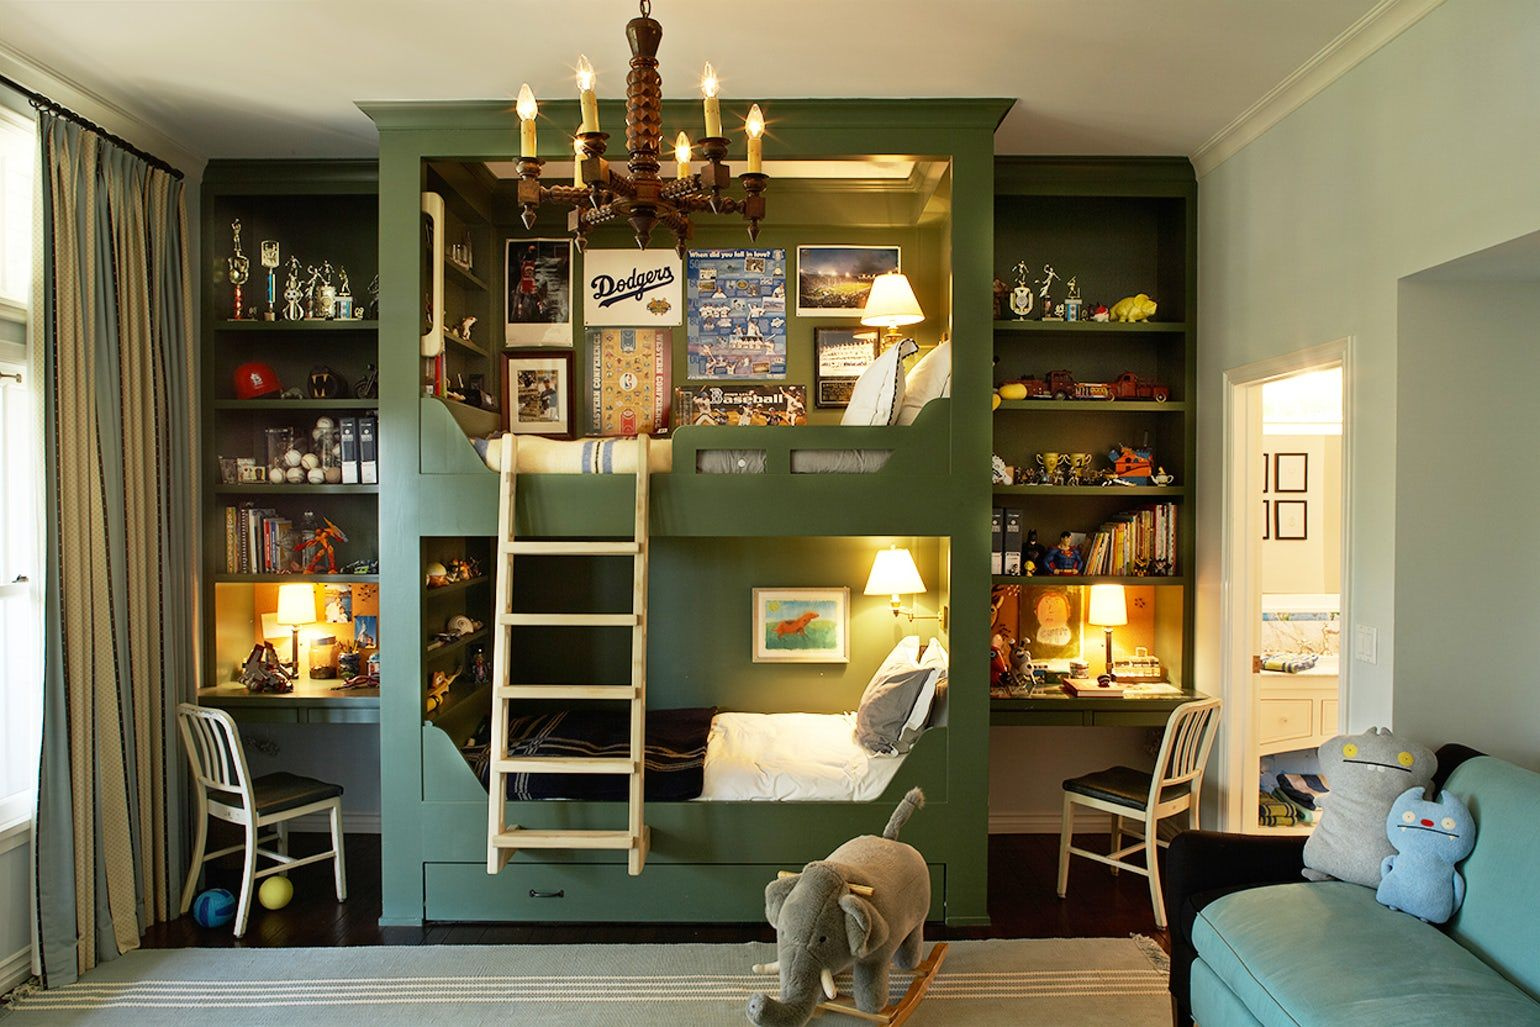 Best Boys Rooms & 20 Amazing Boys Room Ideas - How to Decorate a Boys Bedroom